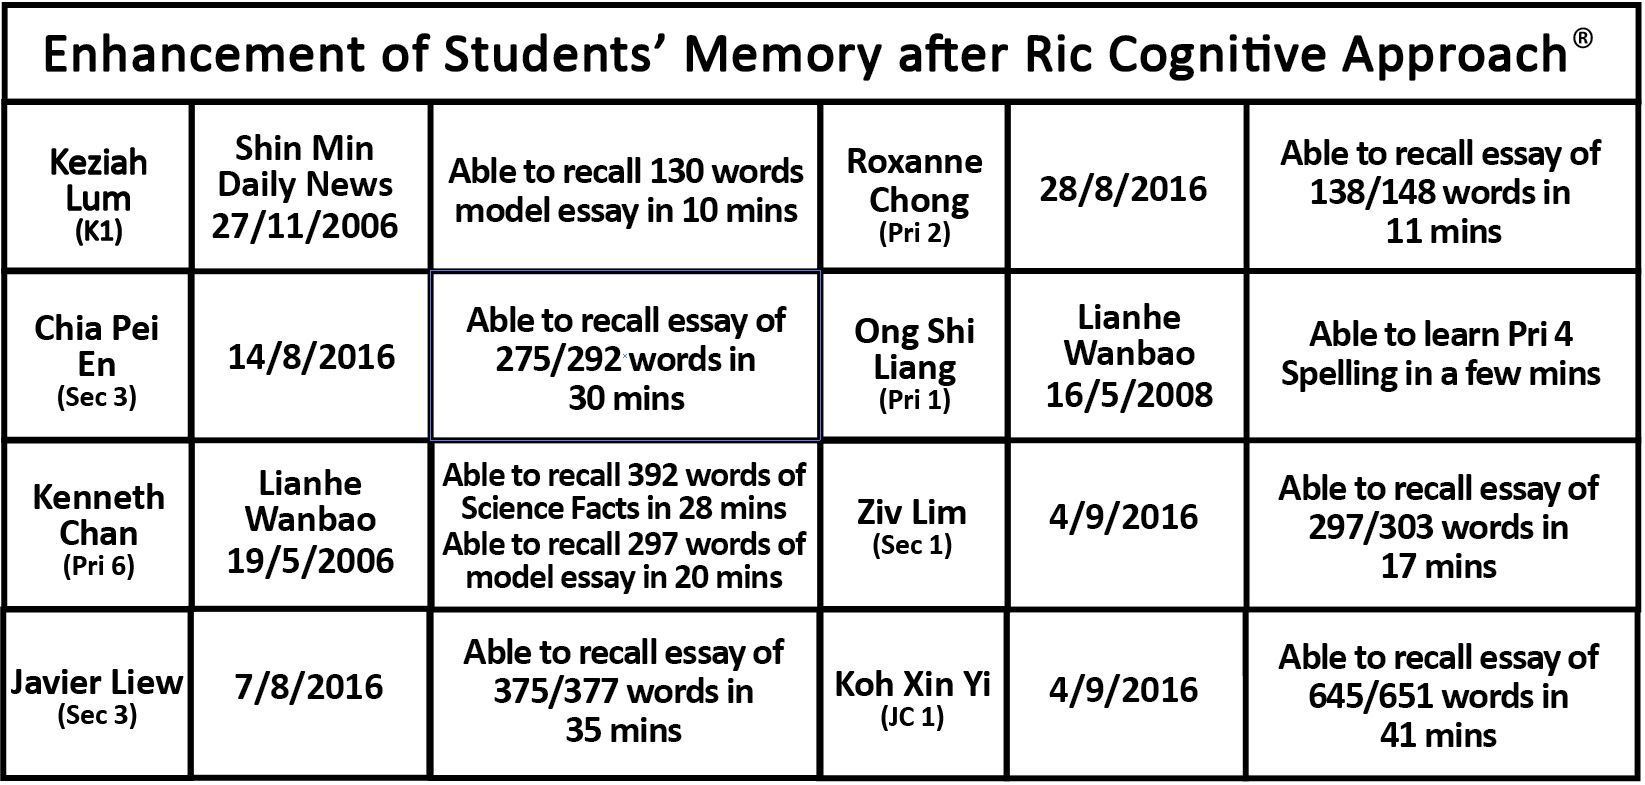 cognitive training singapore to improve iq memory and academics iq improvement after cognitive training singapore memory improvement after cognitive training singapore